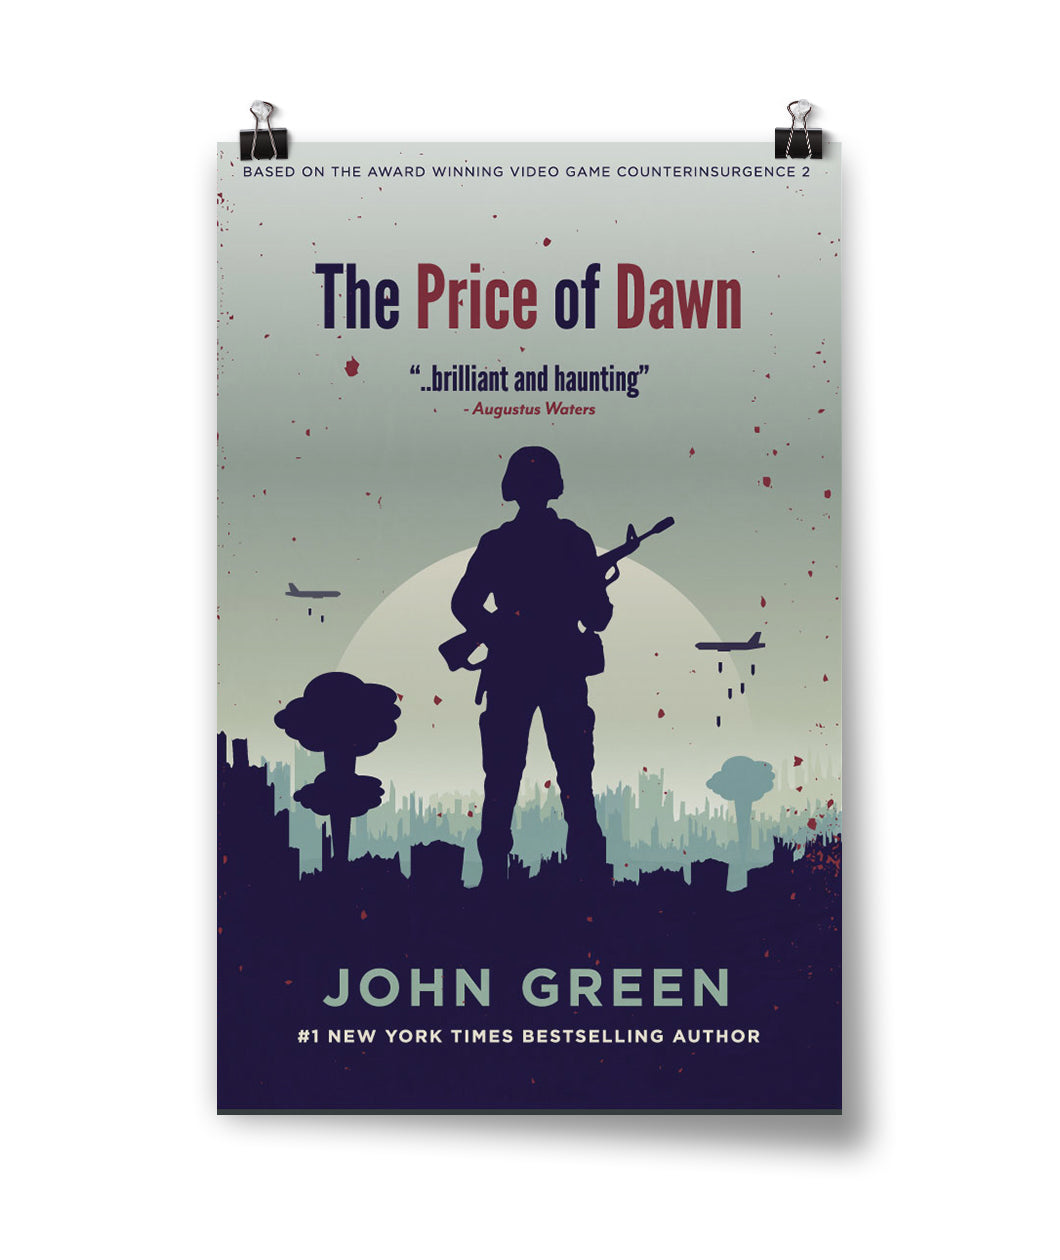 Price of Dawn Posters Signed by John Green